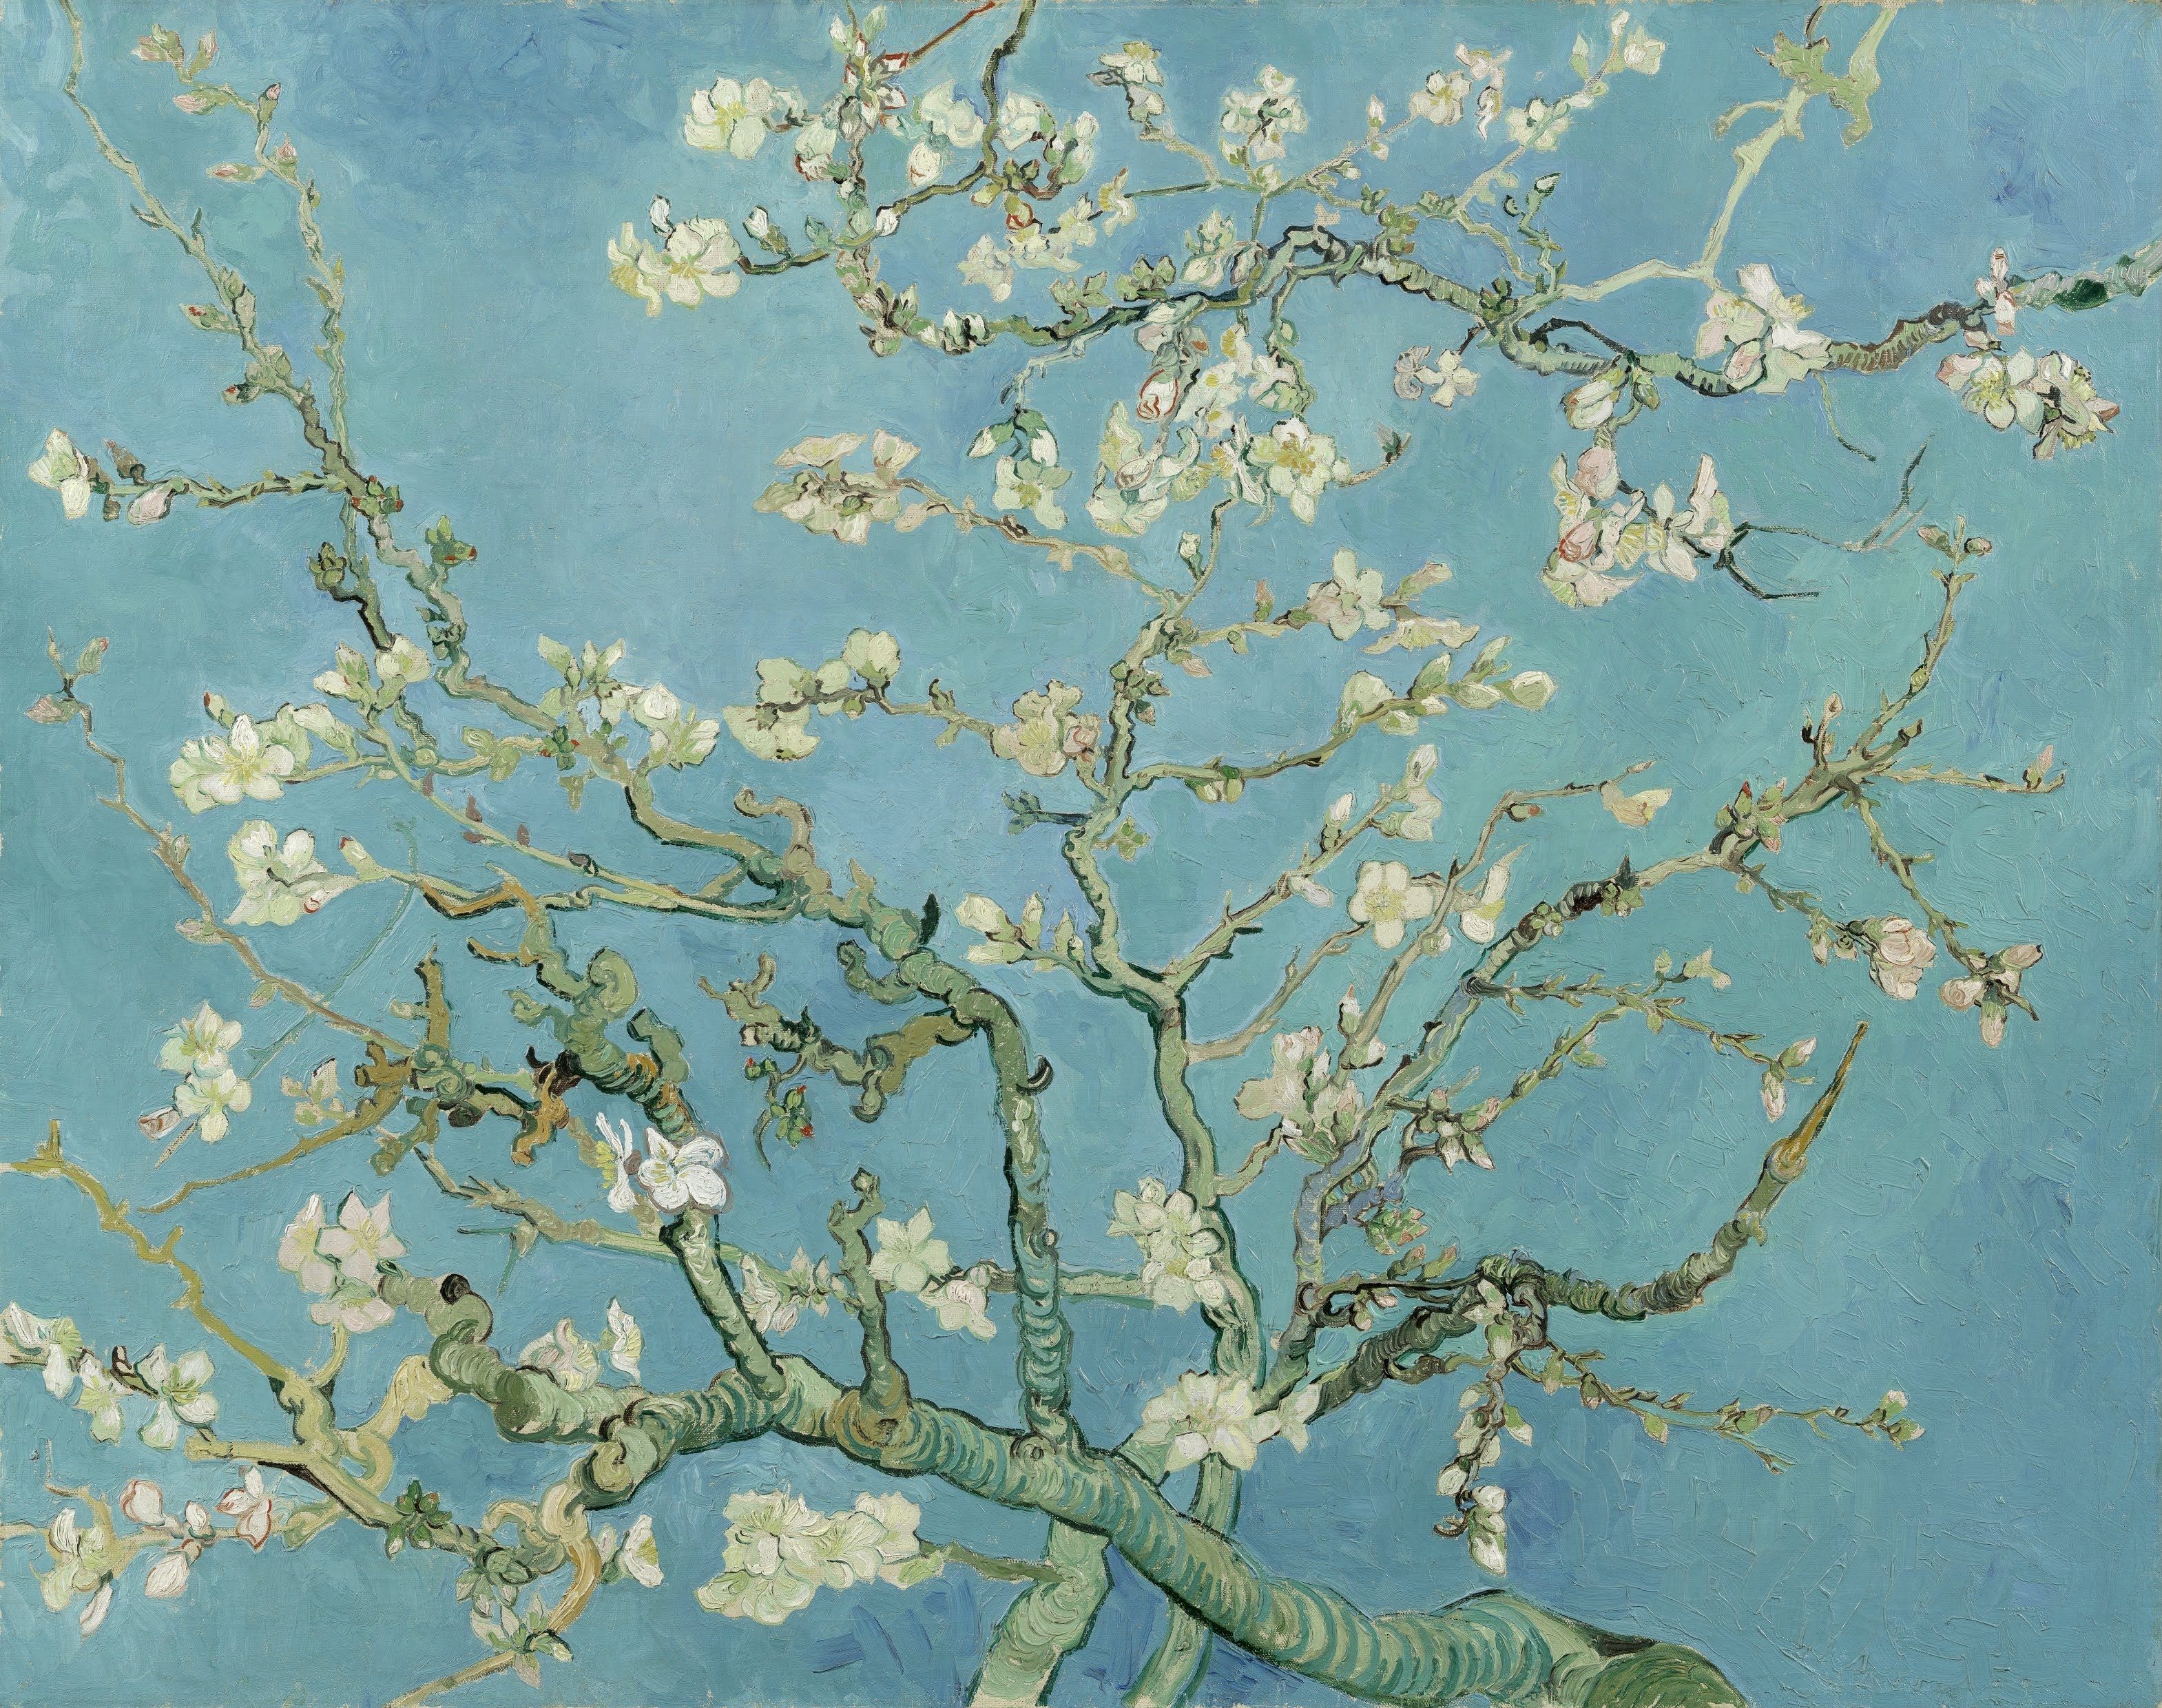 File:vincent Van Gogh – Almond Blossom – Google Art Project Within Most Recently Released Almond Blossoms Vincent Van Gogh Wall Art (View 8 of 20)